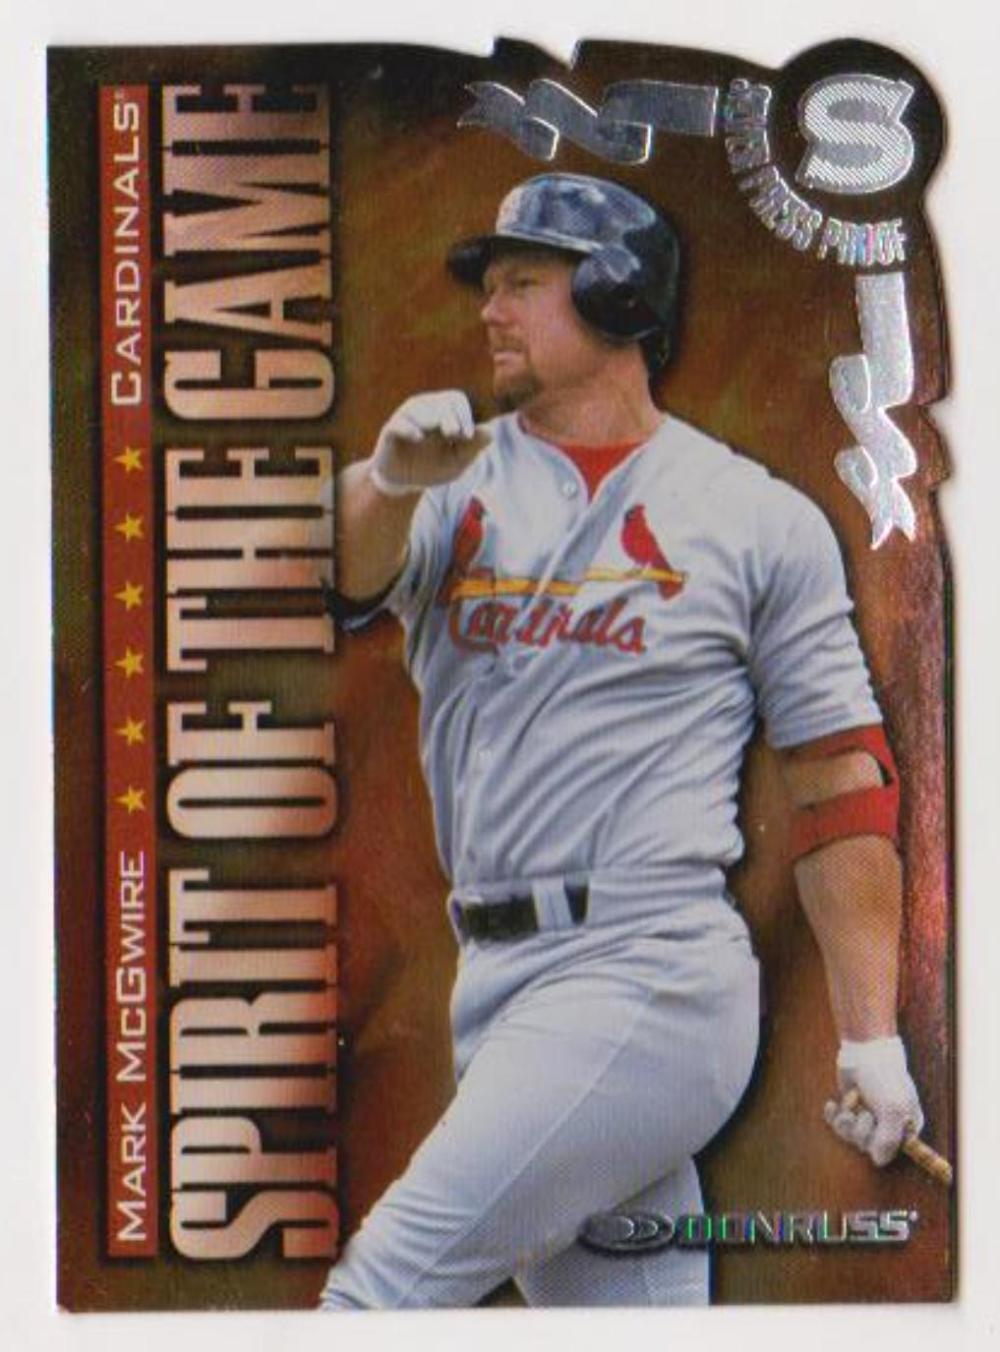 1998 Donruss Silver Press Proof Mark McGwire #401 Insert Card (1 of 1500)